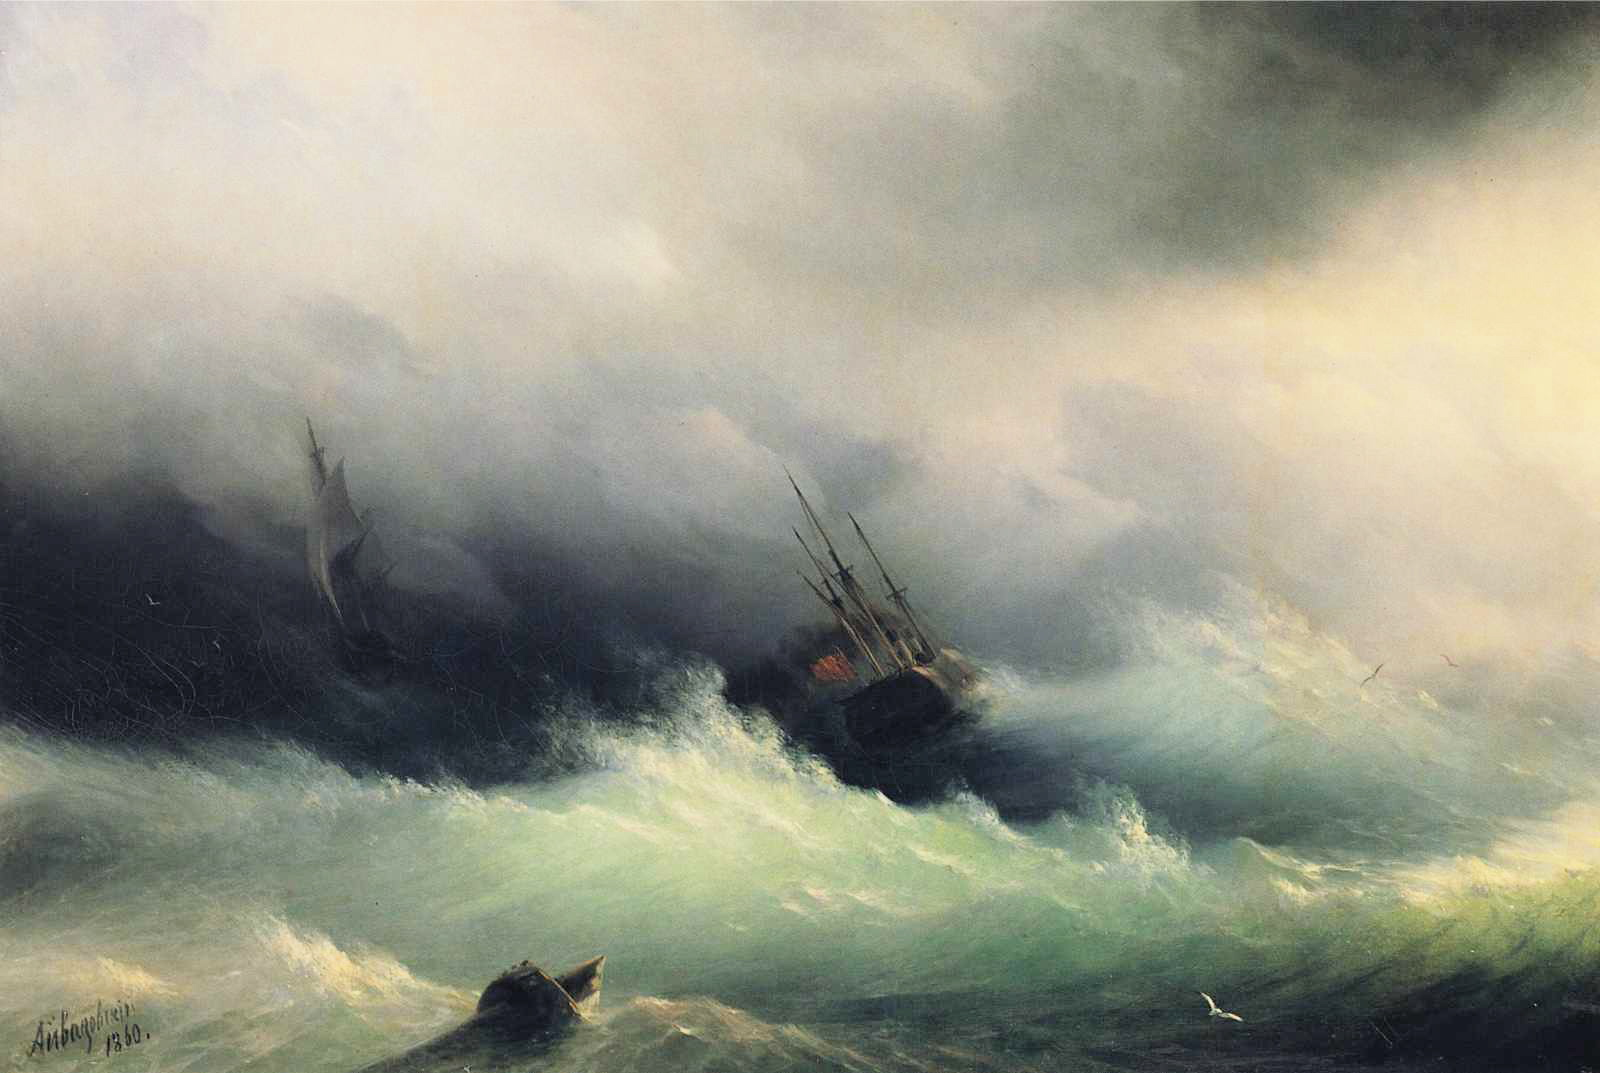 Sailing Ship Painting Storm Ships in a storm.jpg Ship Painting Storm